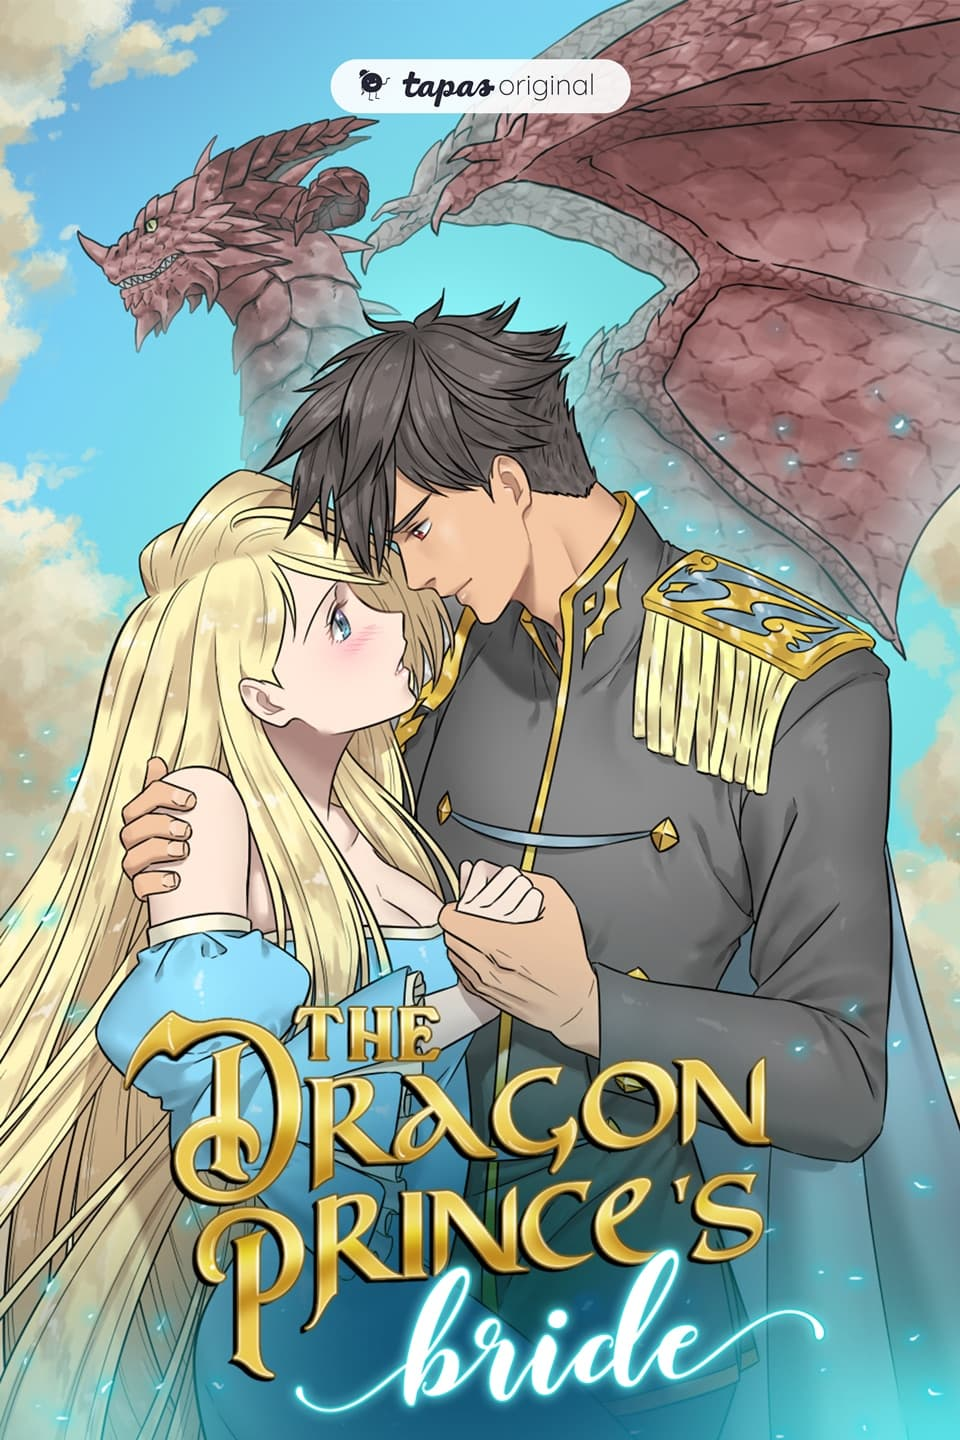 The Dragon Prince's Bride